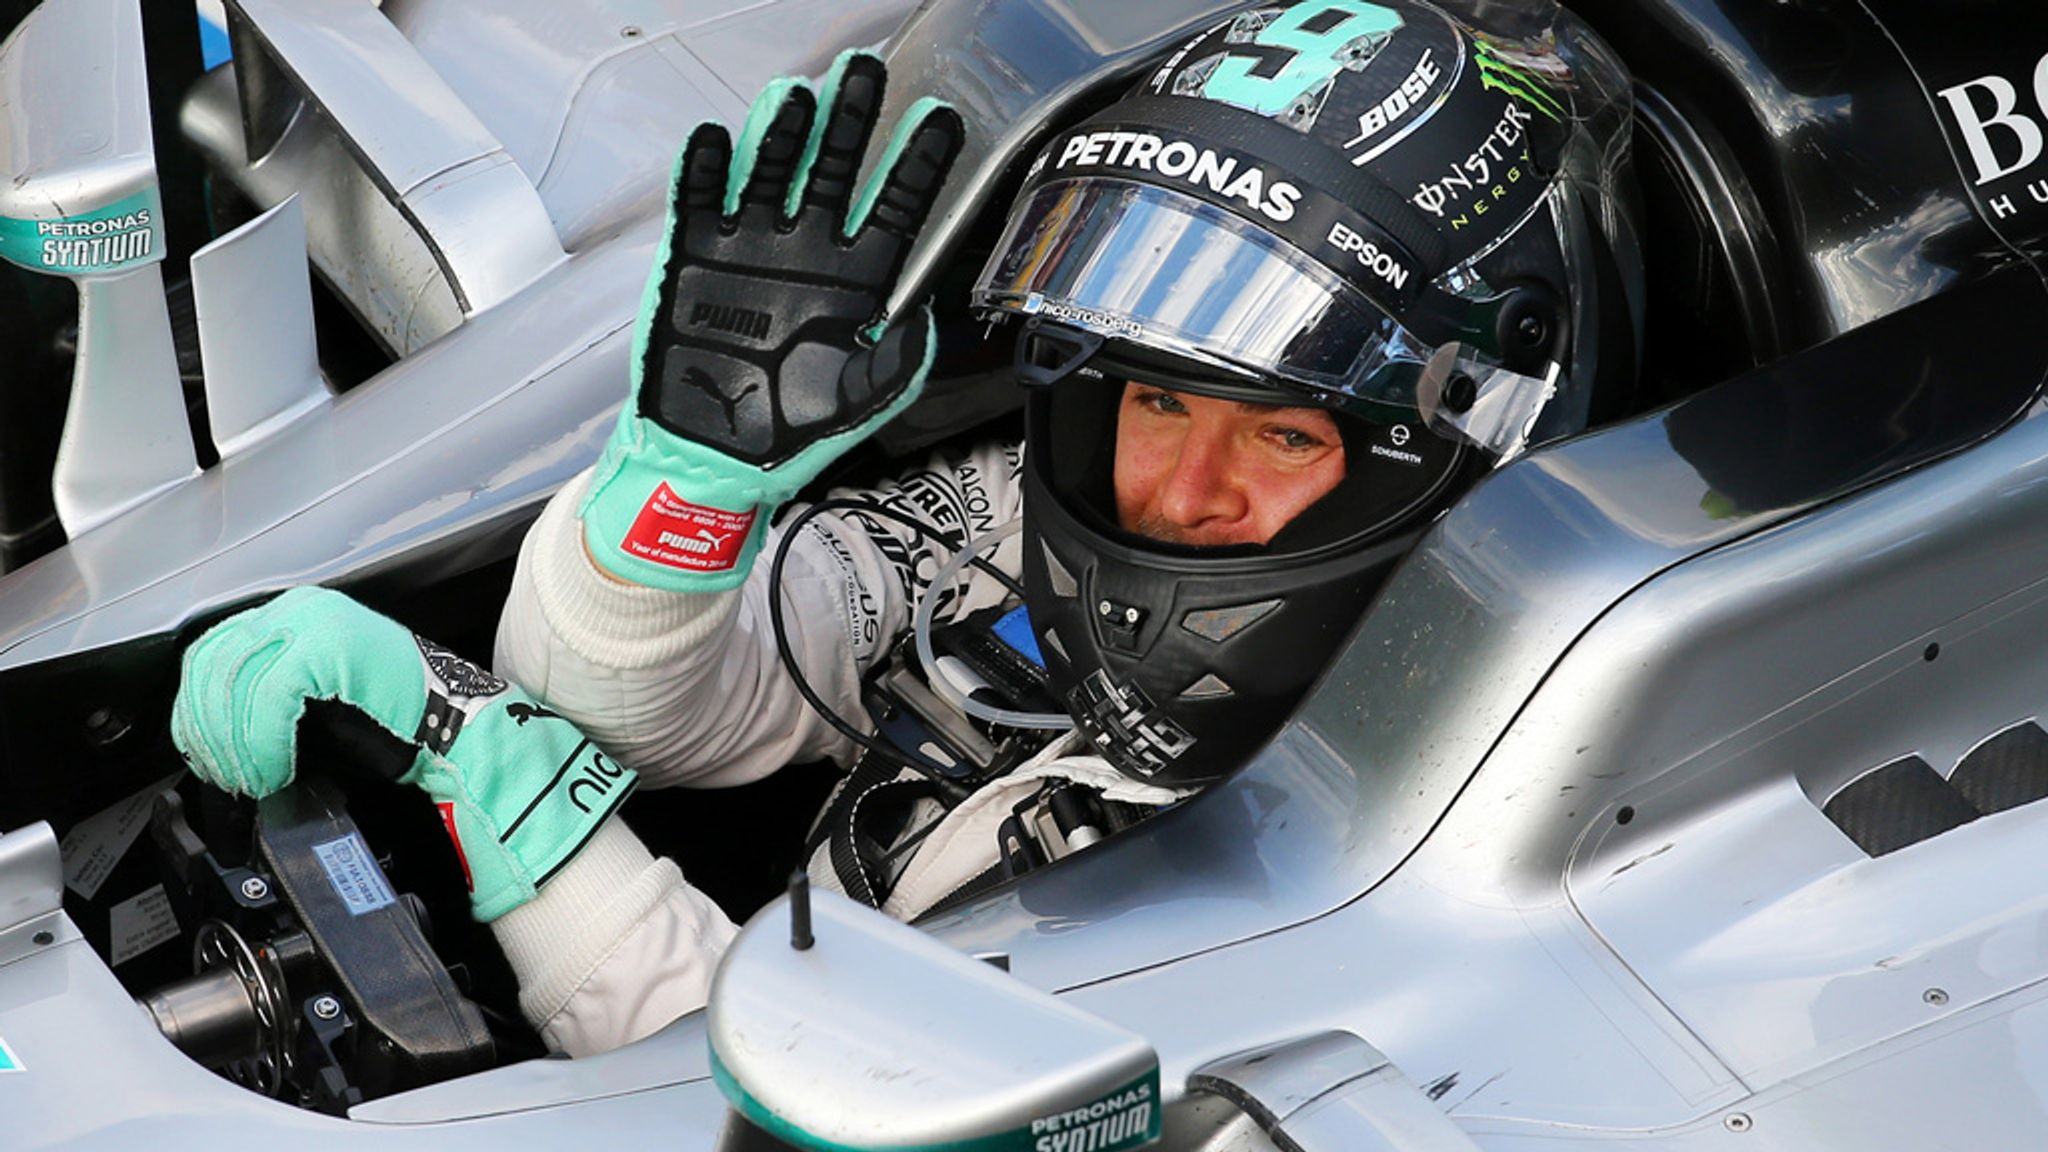 Nico Rosberg to launch personal Excessive E Team